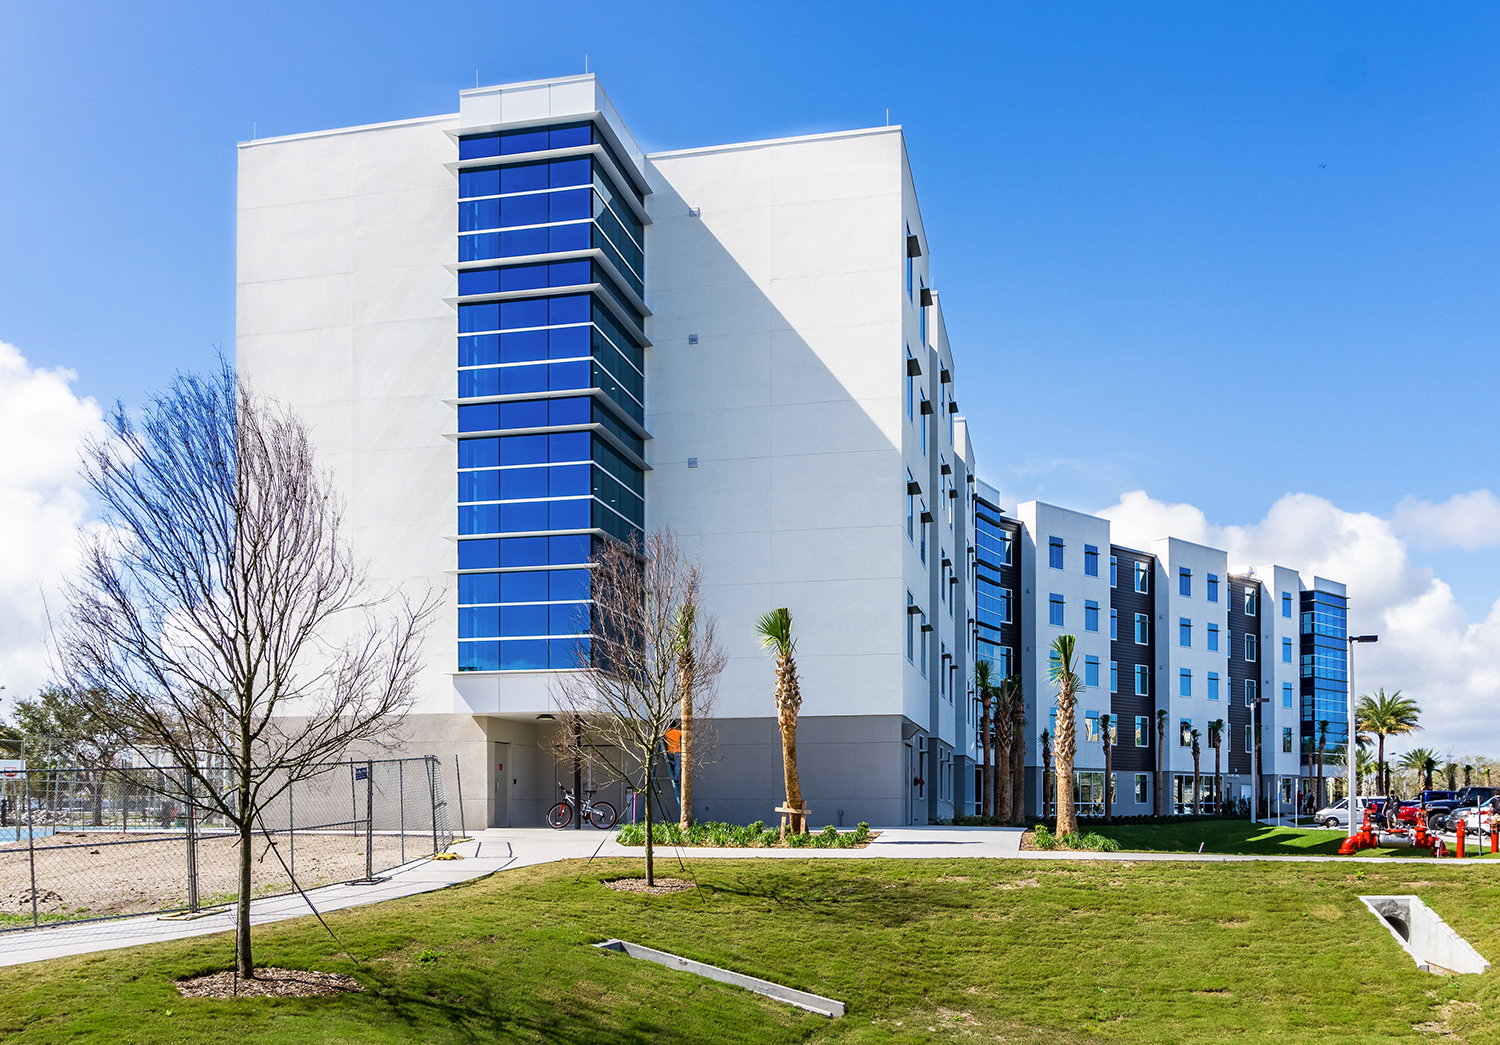 Project stakeholders for the Embry Riddle curtainwall and entrances project trusted the dependability of Tubelite's 400 Curtainwall and 4500 Storefront Systems to complete this project.  Photographer: Charles LeRette Photography